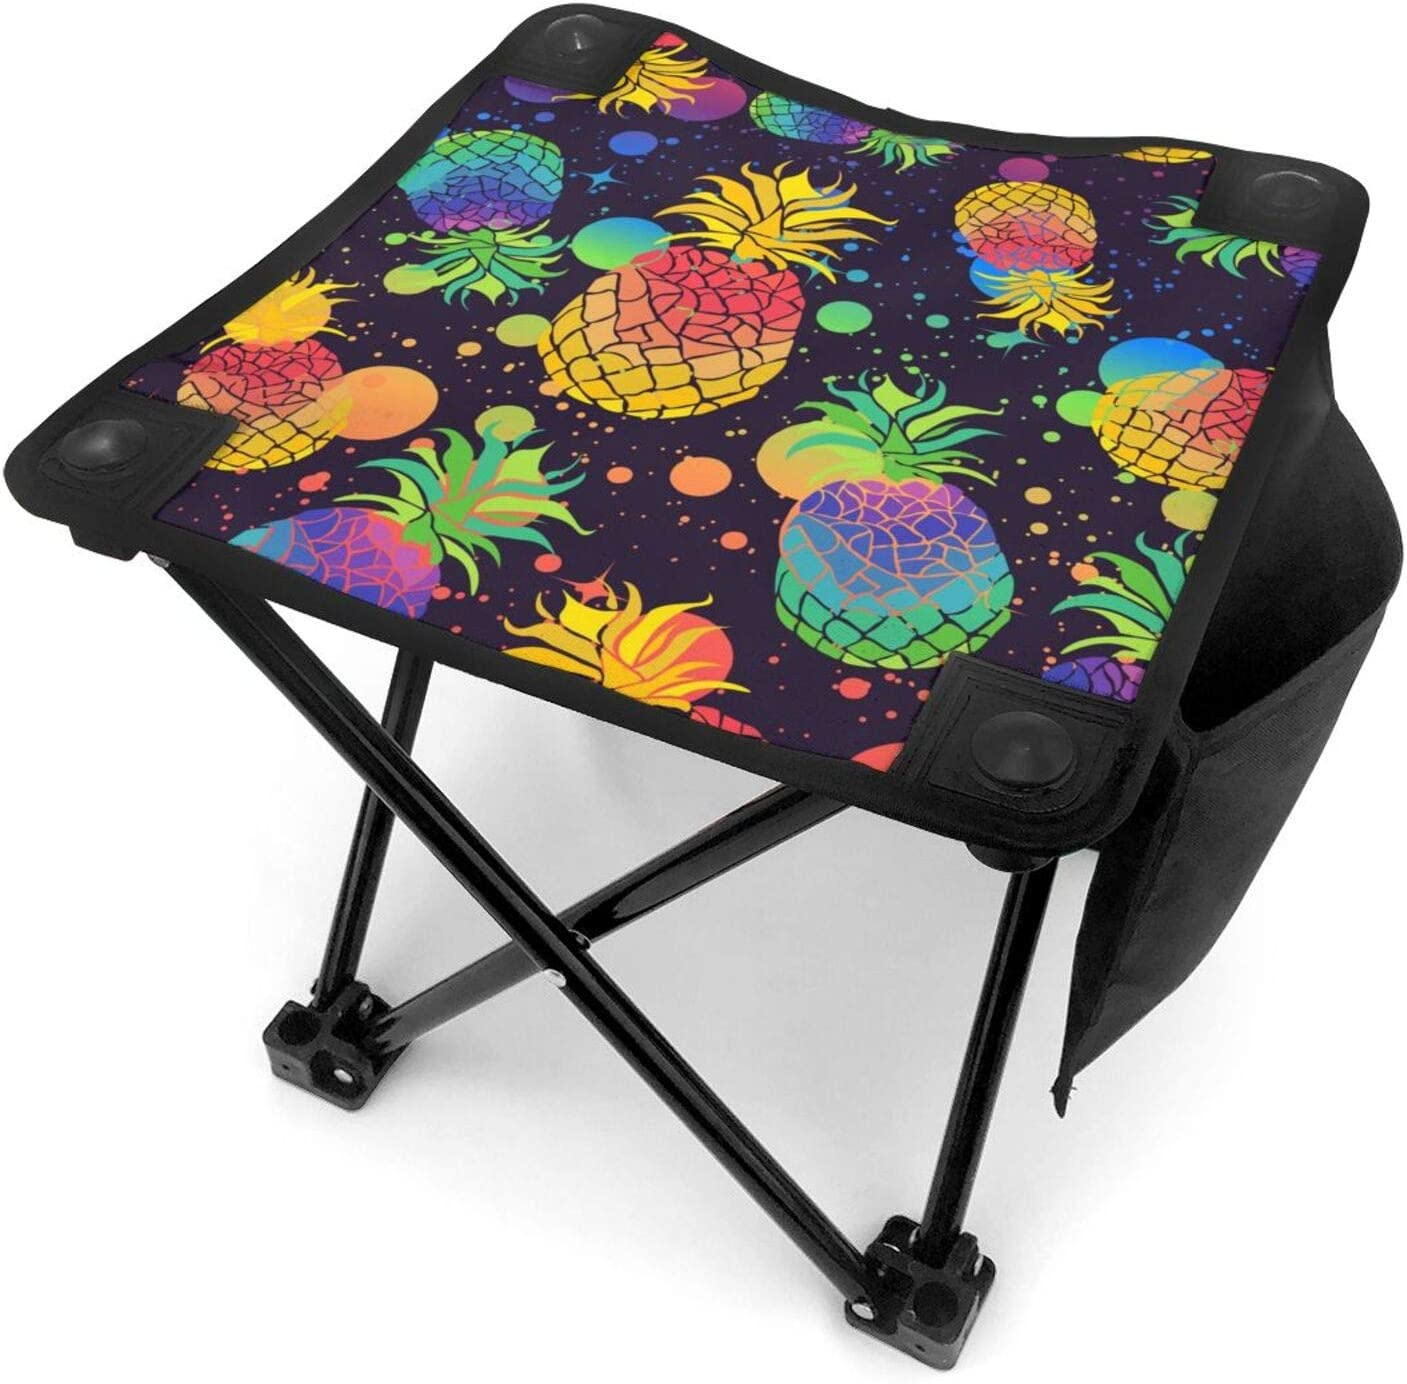 Folding Portable Camping Stool Pineapples With Pride Flag Rainbow Fruits Splashes Mini Lightweight Sturdy Collapsible Chair For Camping, Fishing, Hiking, Fishing, Travel, Beach, Picnic With Portable B